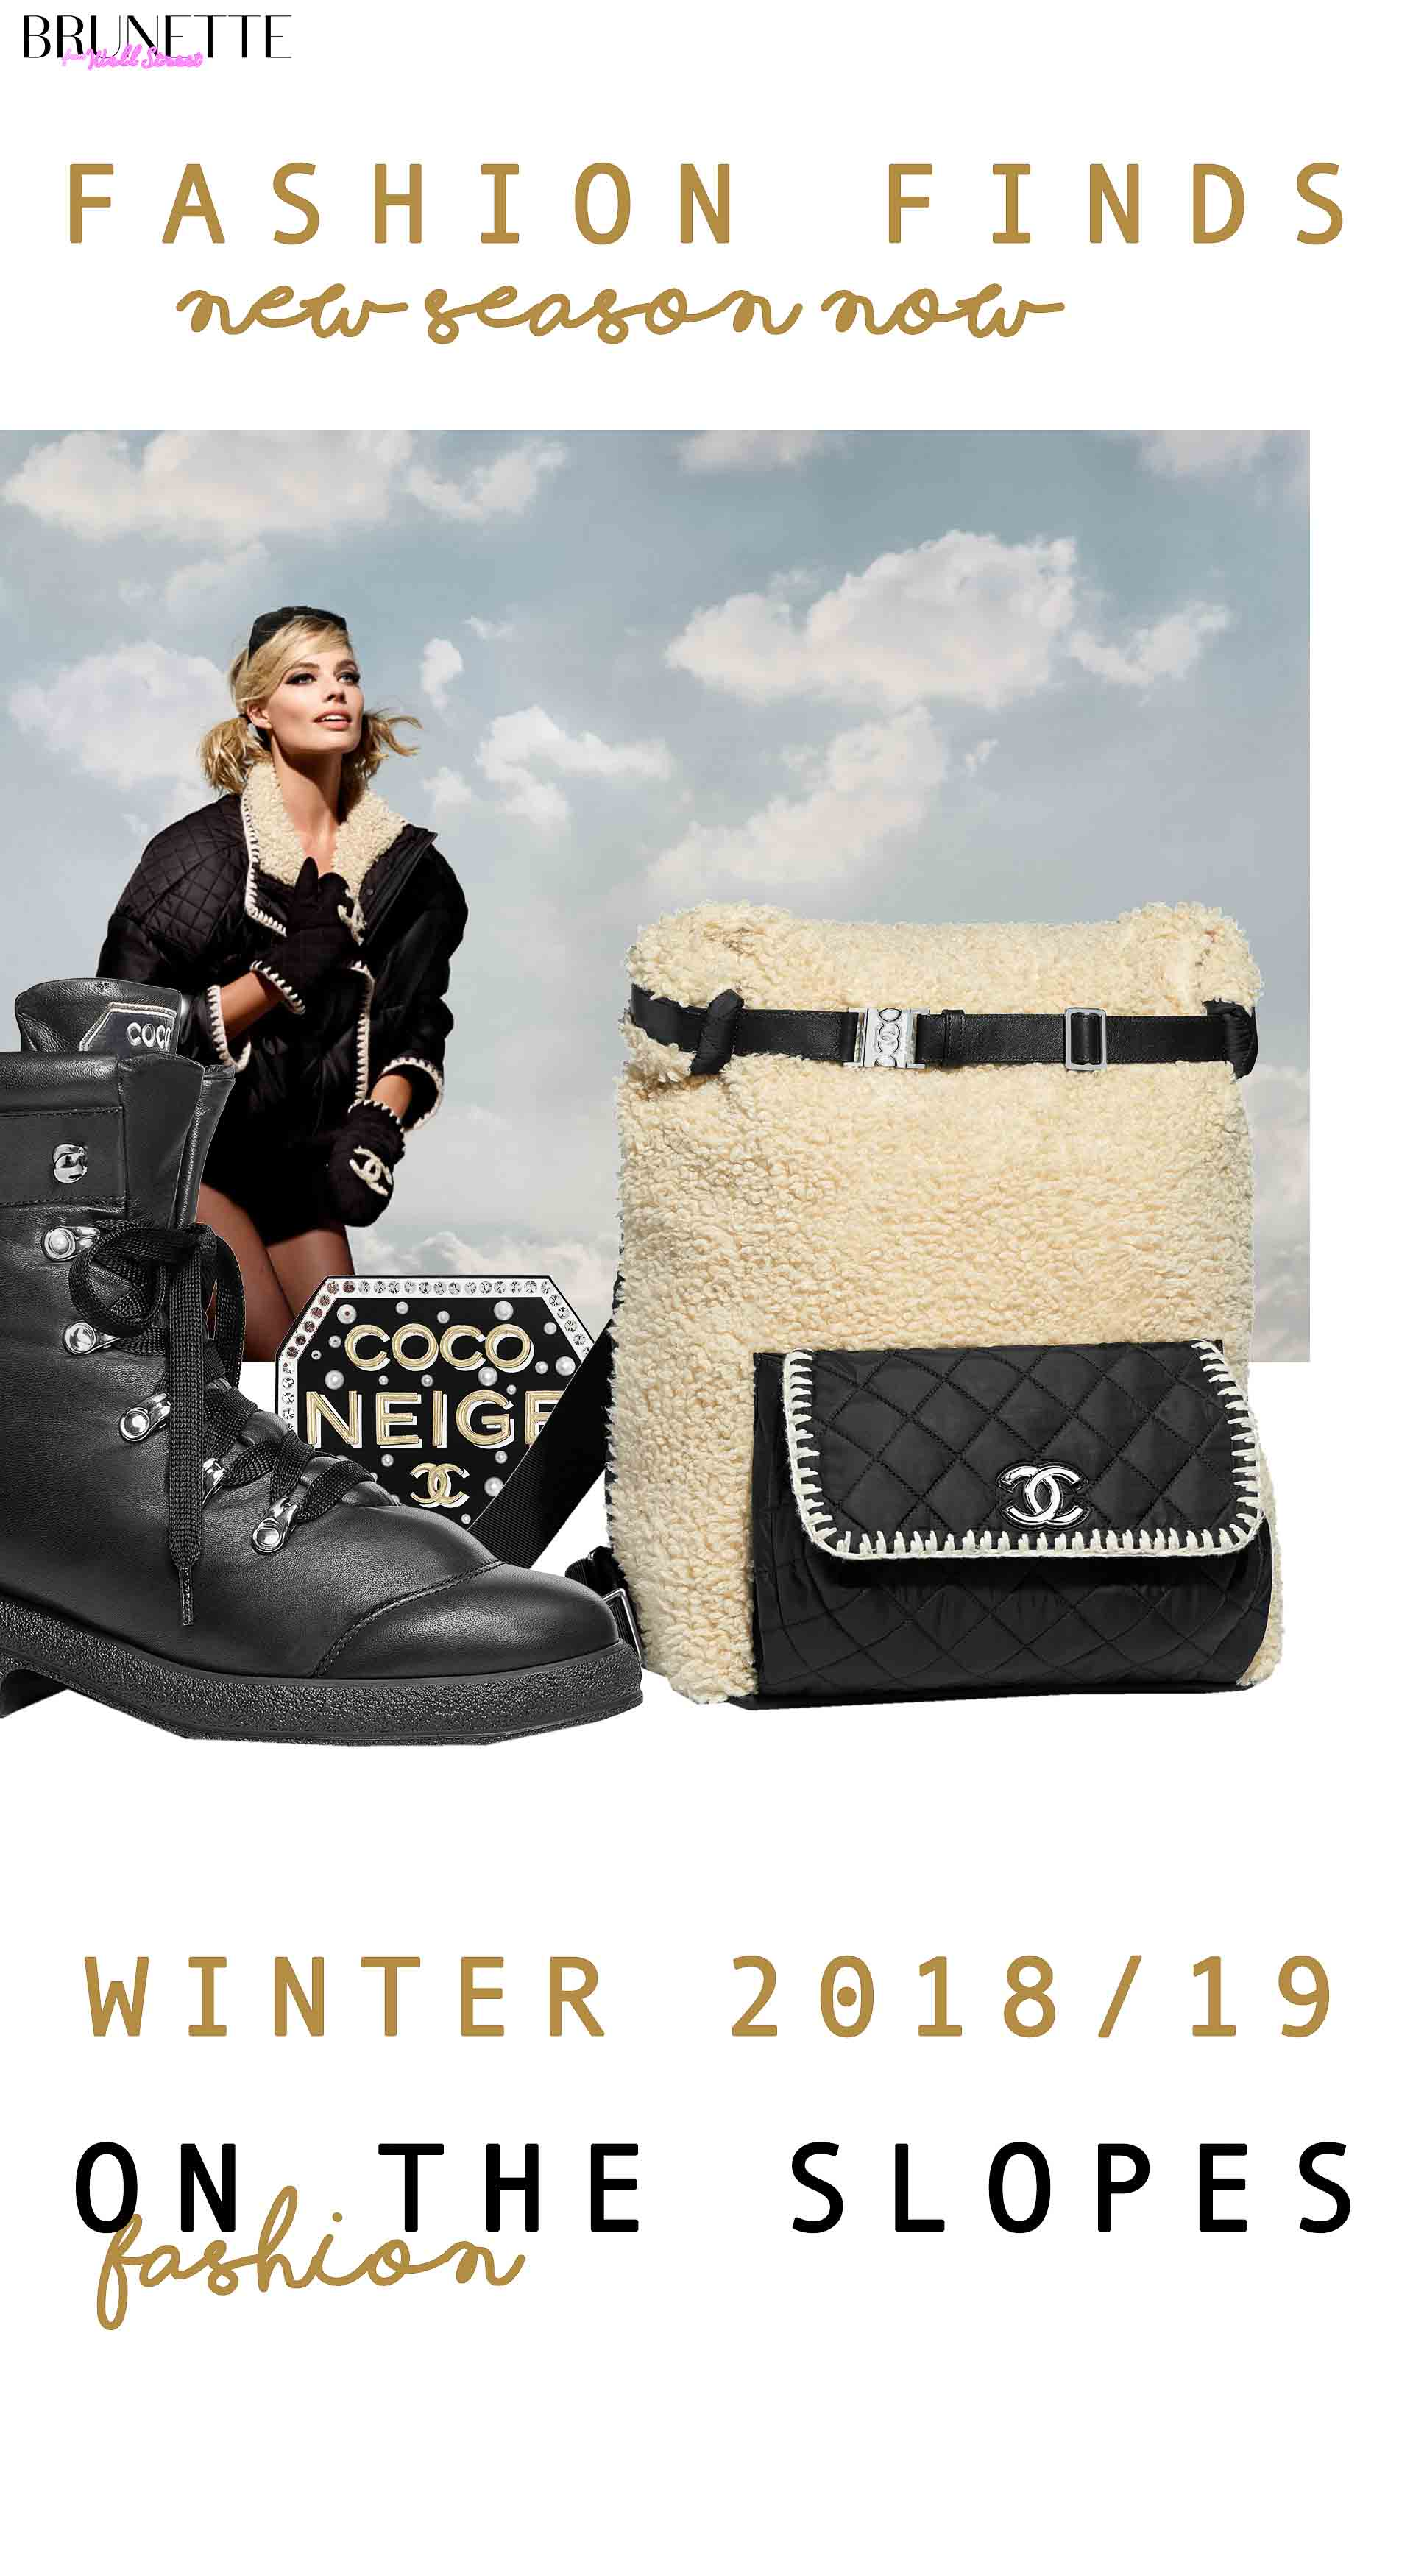 Chanel boots, Chanel bag with text overlay Fashion Finds new season now winter 2018/19 fashion on the slopes